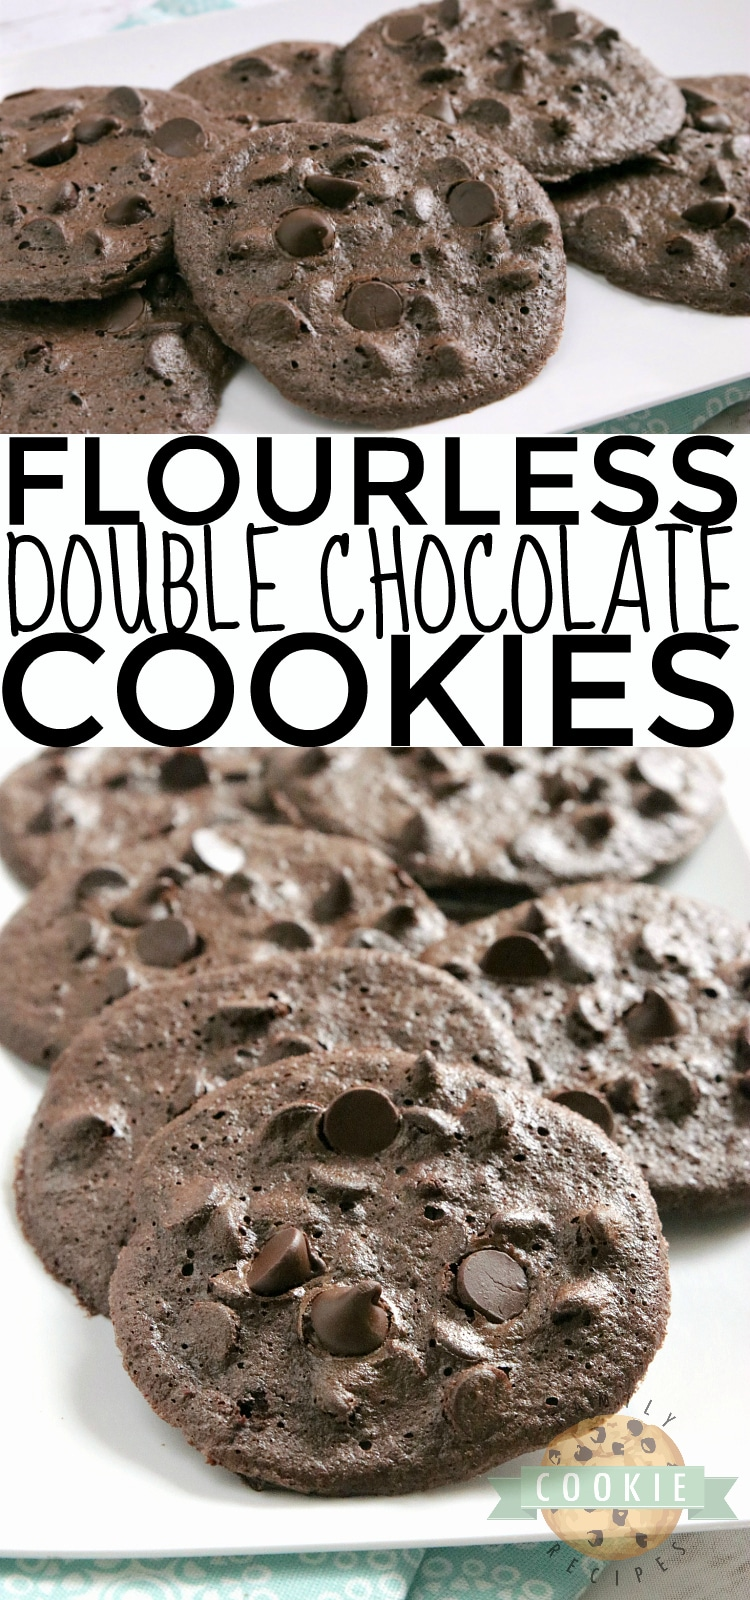 Flourless Double Chocolate Cookies are soft, fudgy and have absolutely no flour in them! The perfect flourless cookie recipe, whether you need a gluten-free cookie or even if you just don't have any flour on hand!